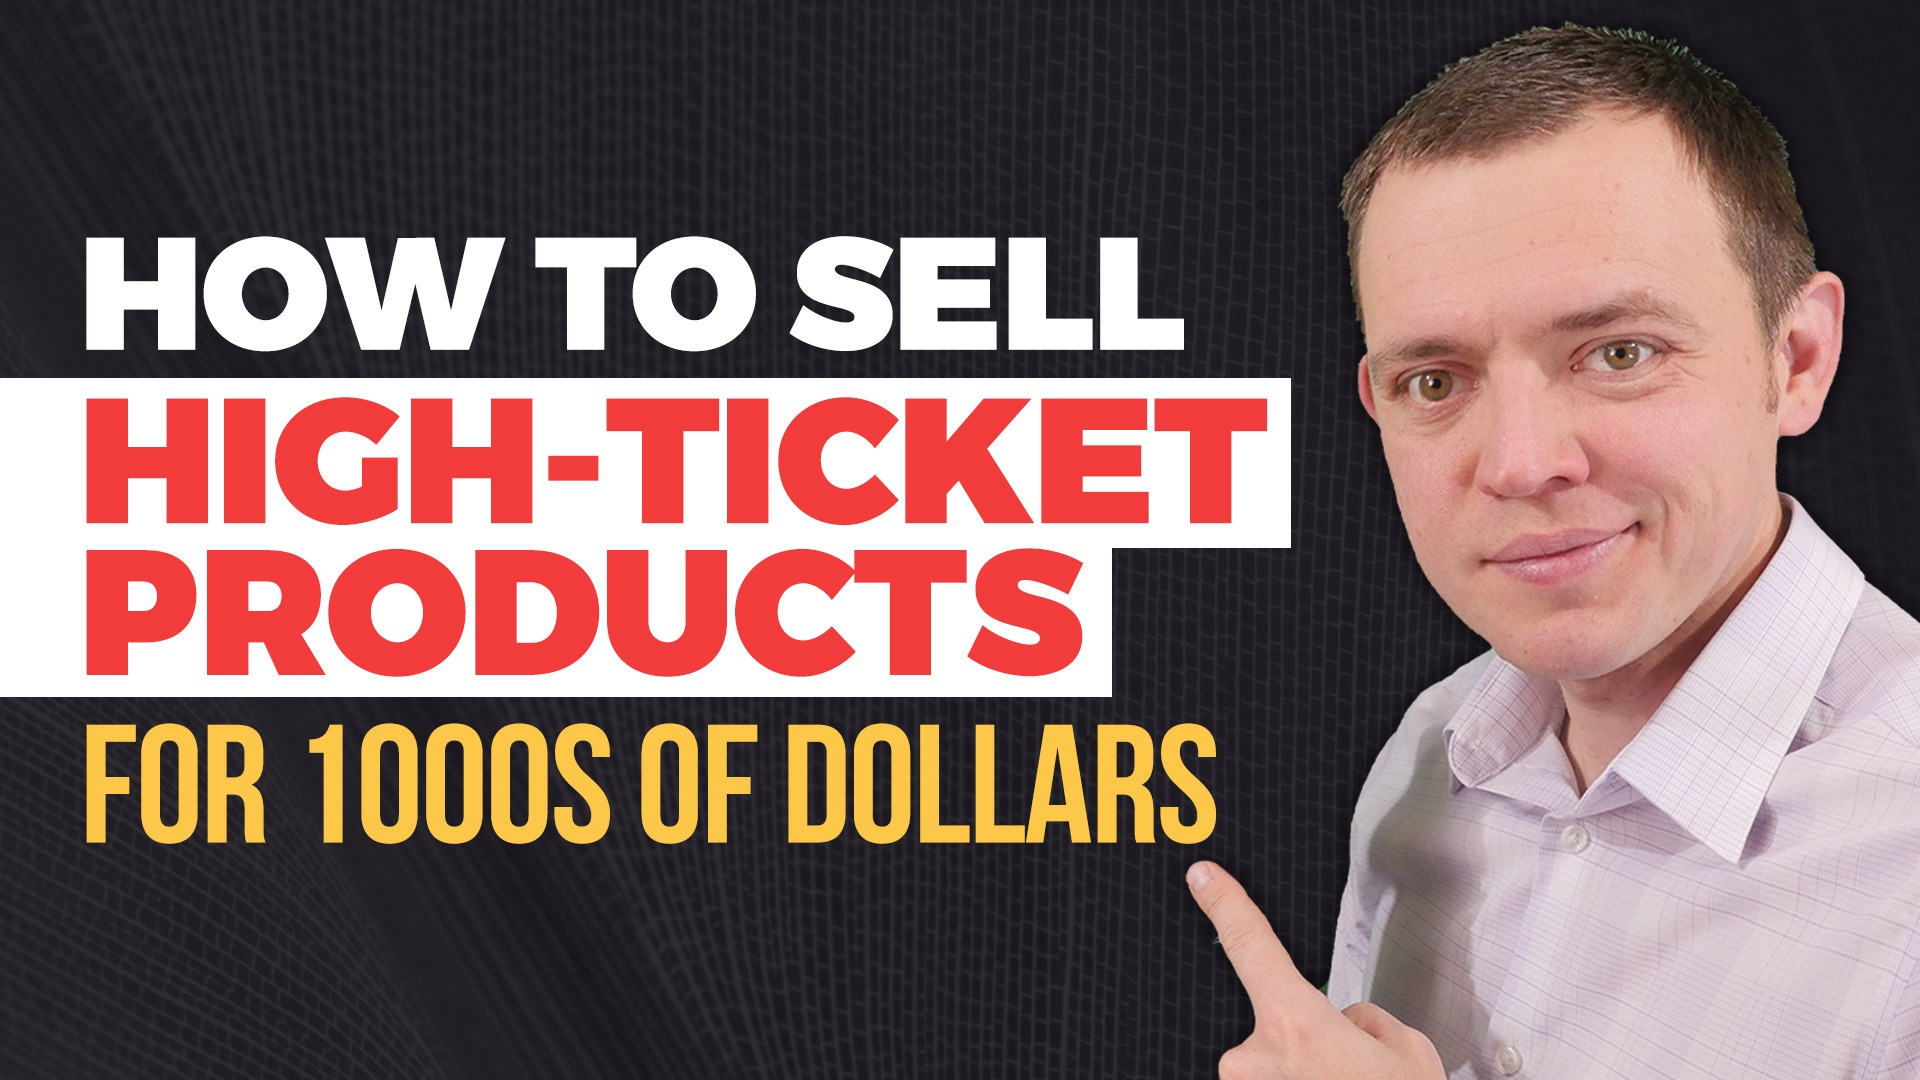 How to Sell High Ticket Items in the $1,000's of Dollars… Does it Work?